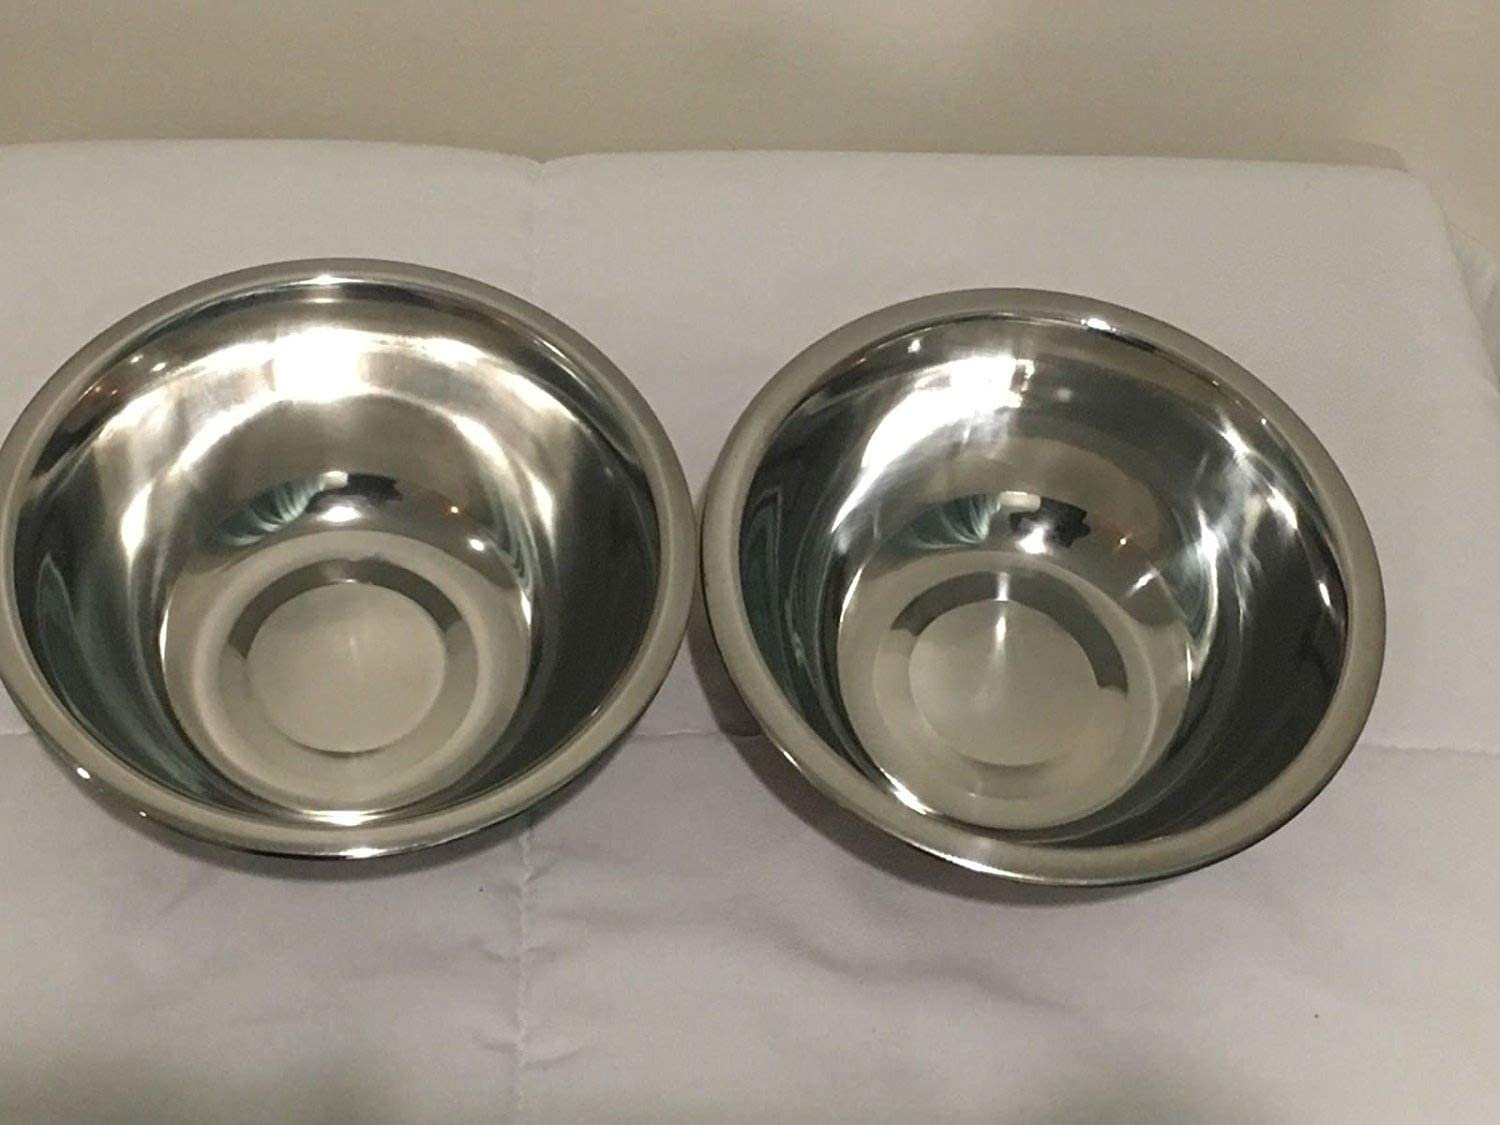 2 Copper Plated Stainless Steel Mixing Bowls